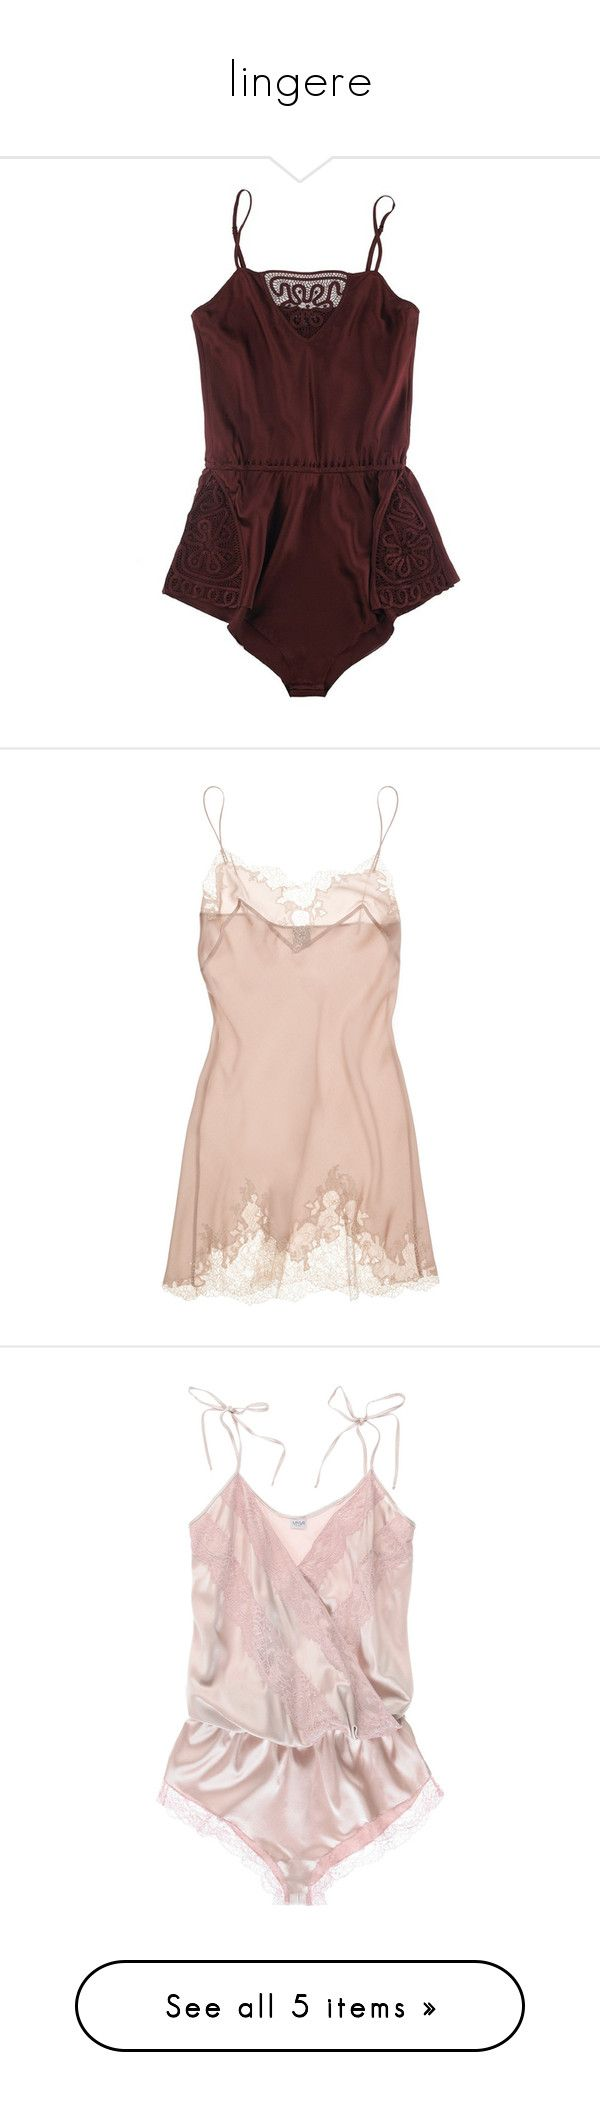 """""""lingere"""" by hallways ❤ liked on Polyvore featuring intimates, lingerie, underwear, dresses, tops, women, silk lingerie, see through lingerie, lacy lingerie and sheer lace lingerie"""